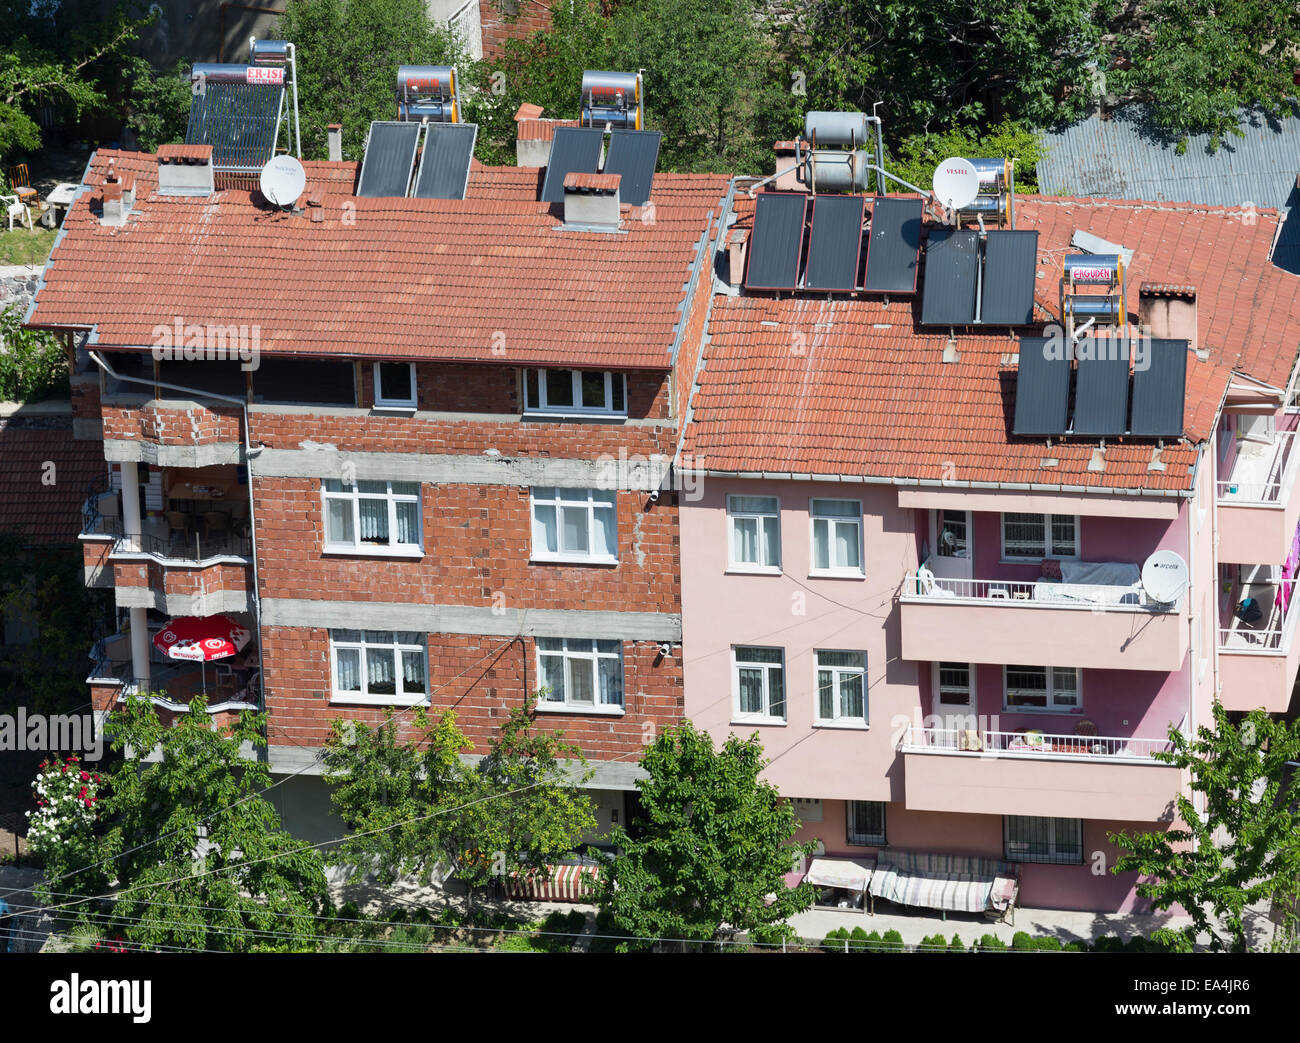 solar panels on roofs of apartment blocks, Niksar town, Anatolia, Turley - Stock Image